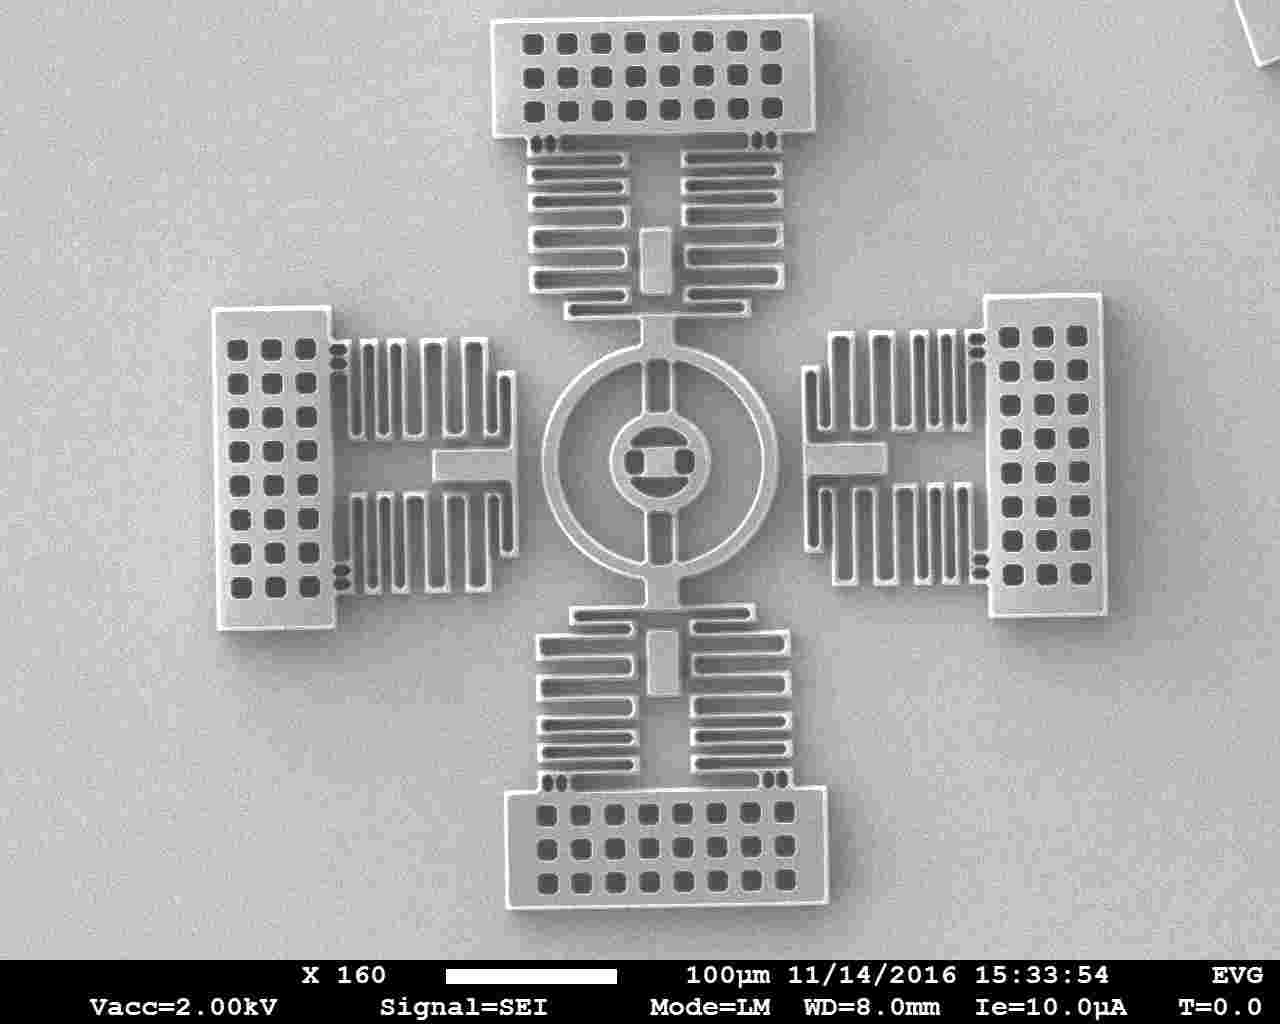 MEMS structures patterned in 20 µm thick resist.